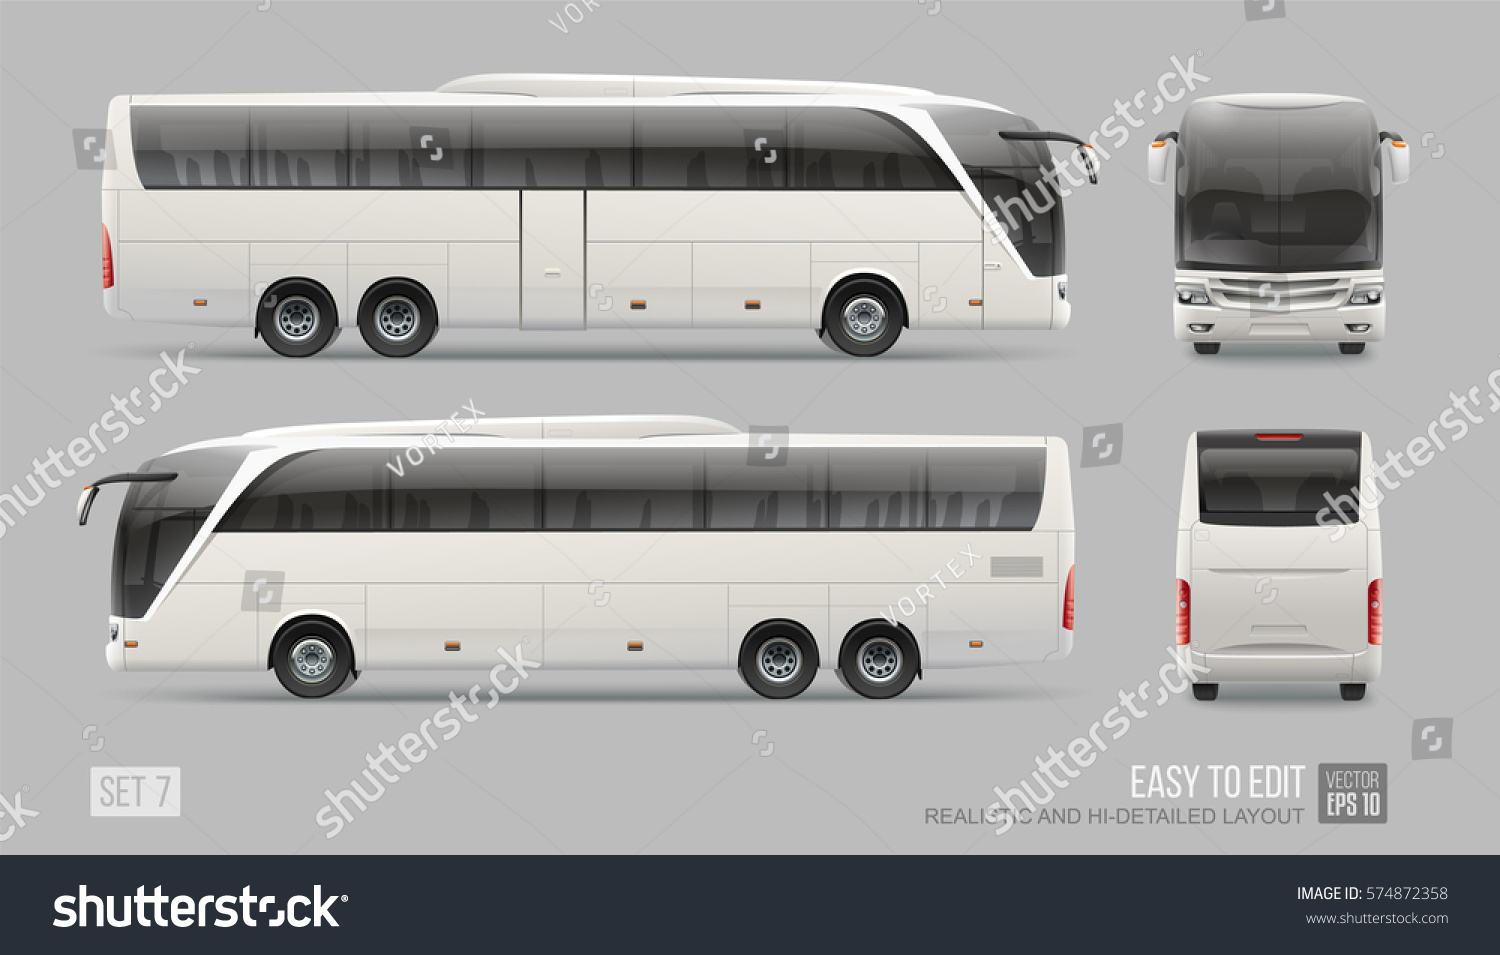 hidetailed vector coach bus blank surface stock vector royalty free